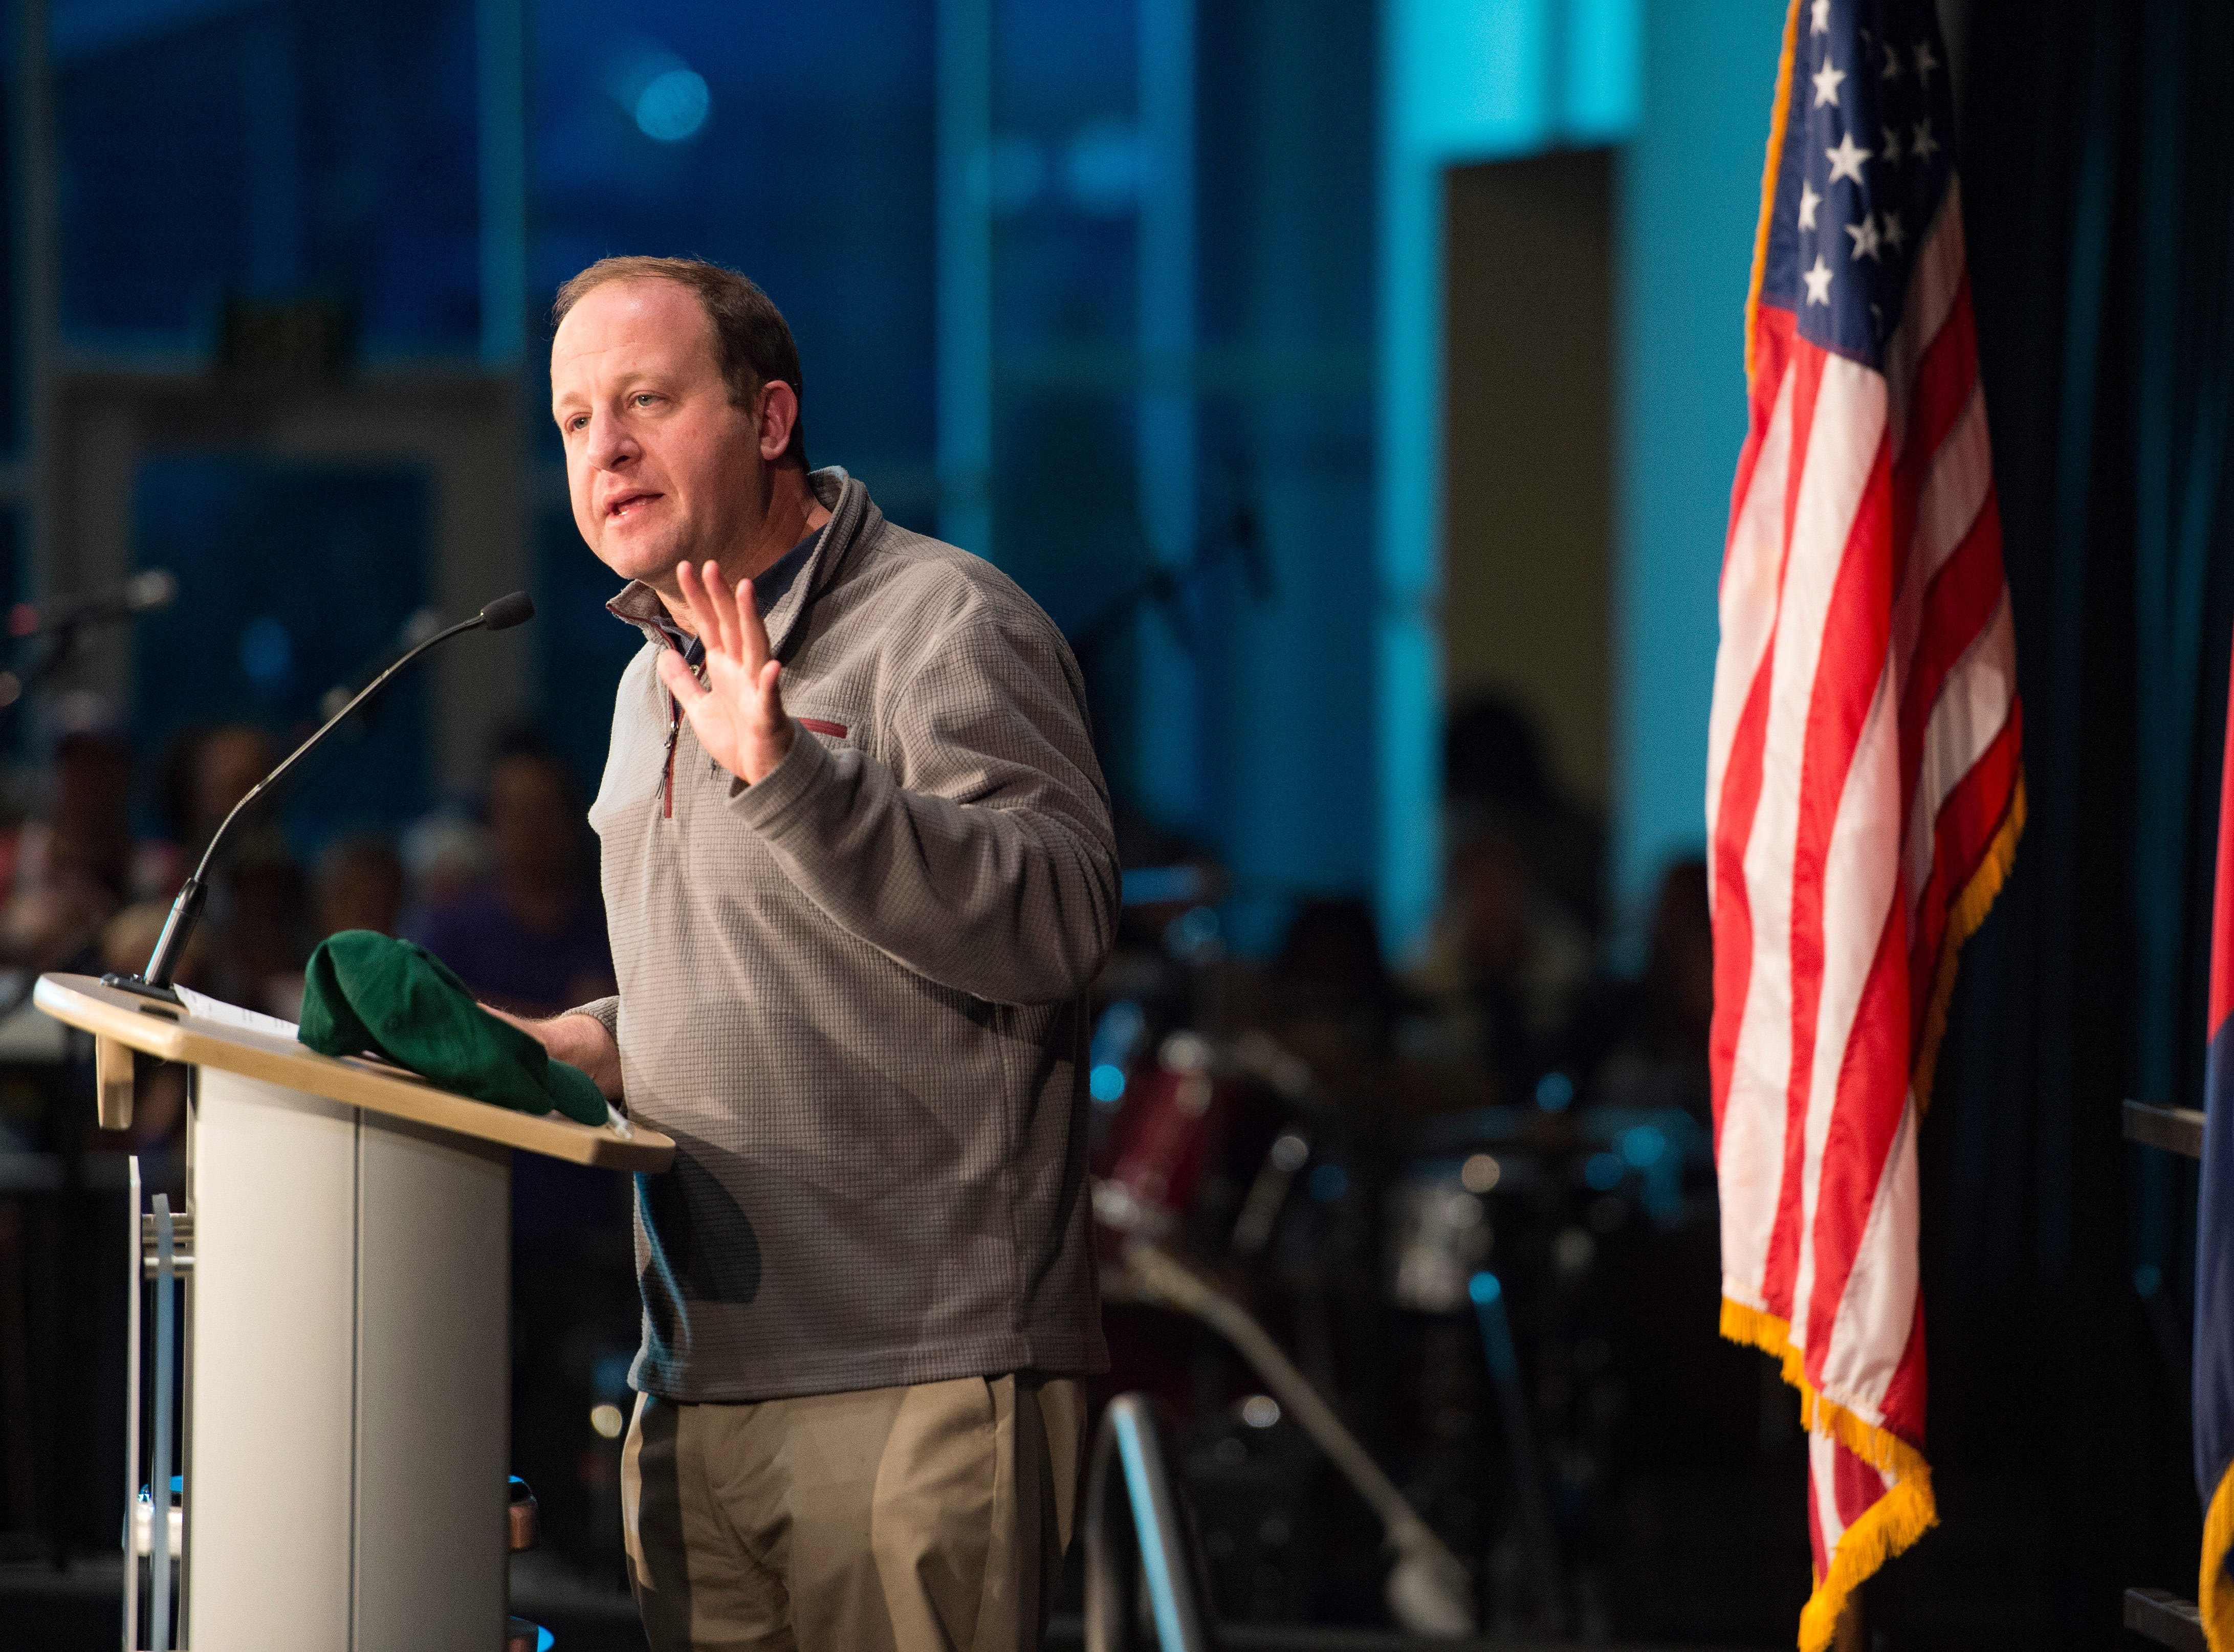 Democratic candidate for Colorado Governor Jared Polis speaks during a Colorado Democrats rally at the Lory Student Center at CSU on Wednesday, October 24, 2018.